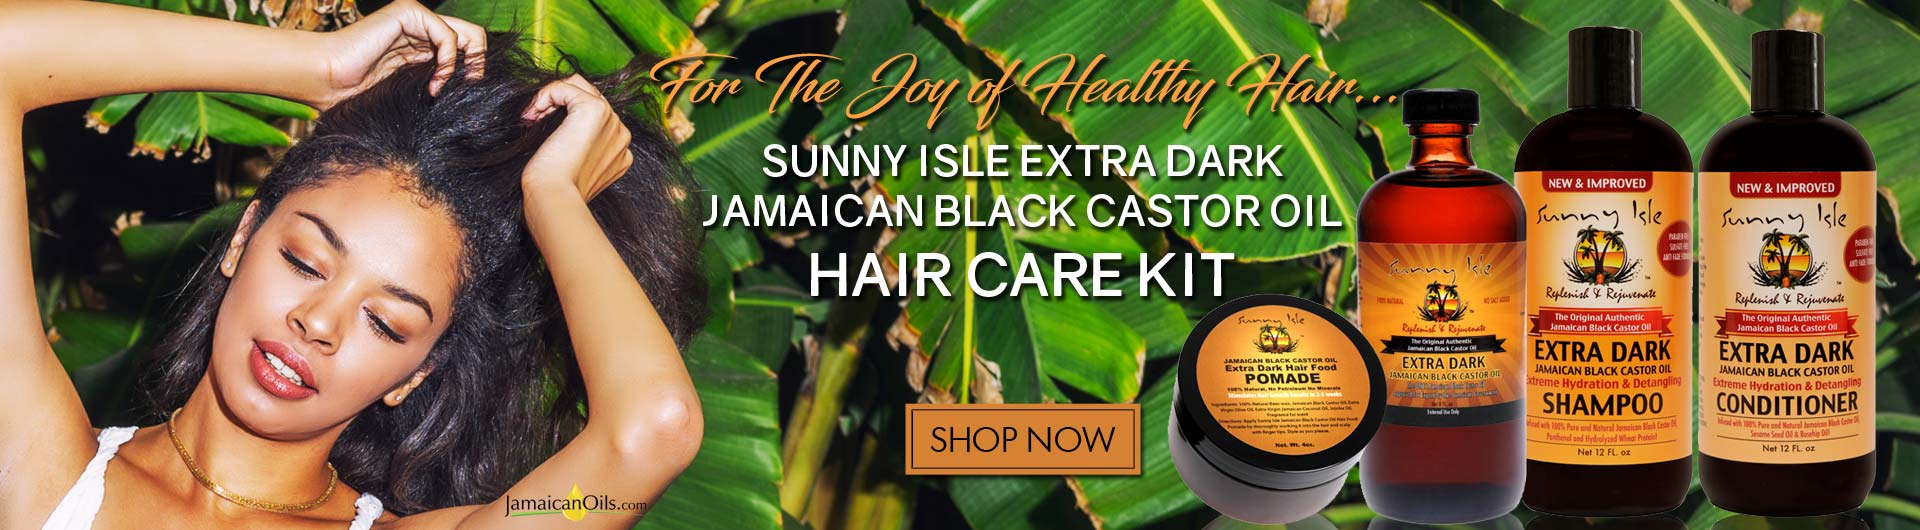 For the Joy of Healthy Hair